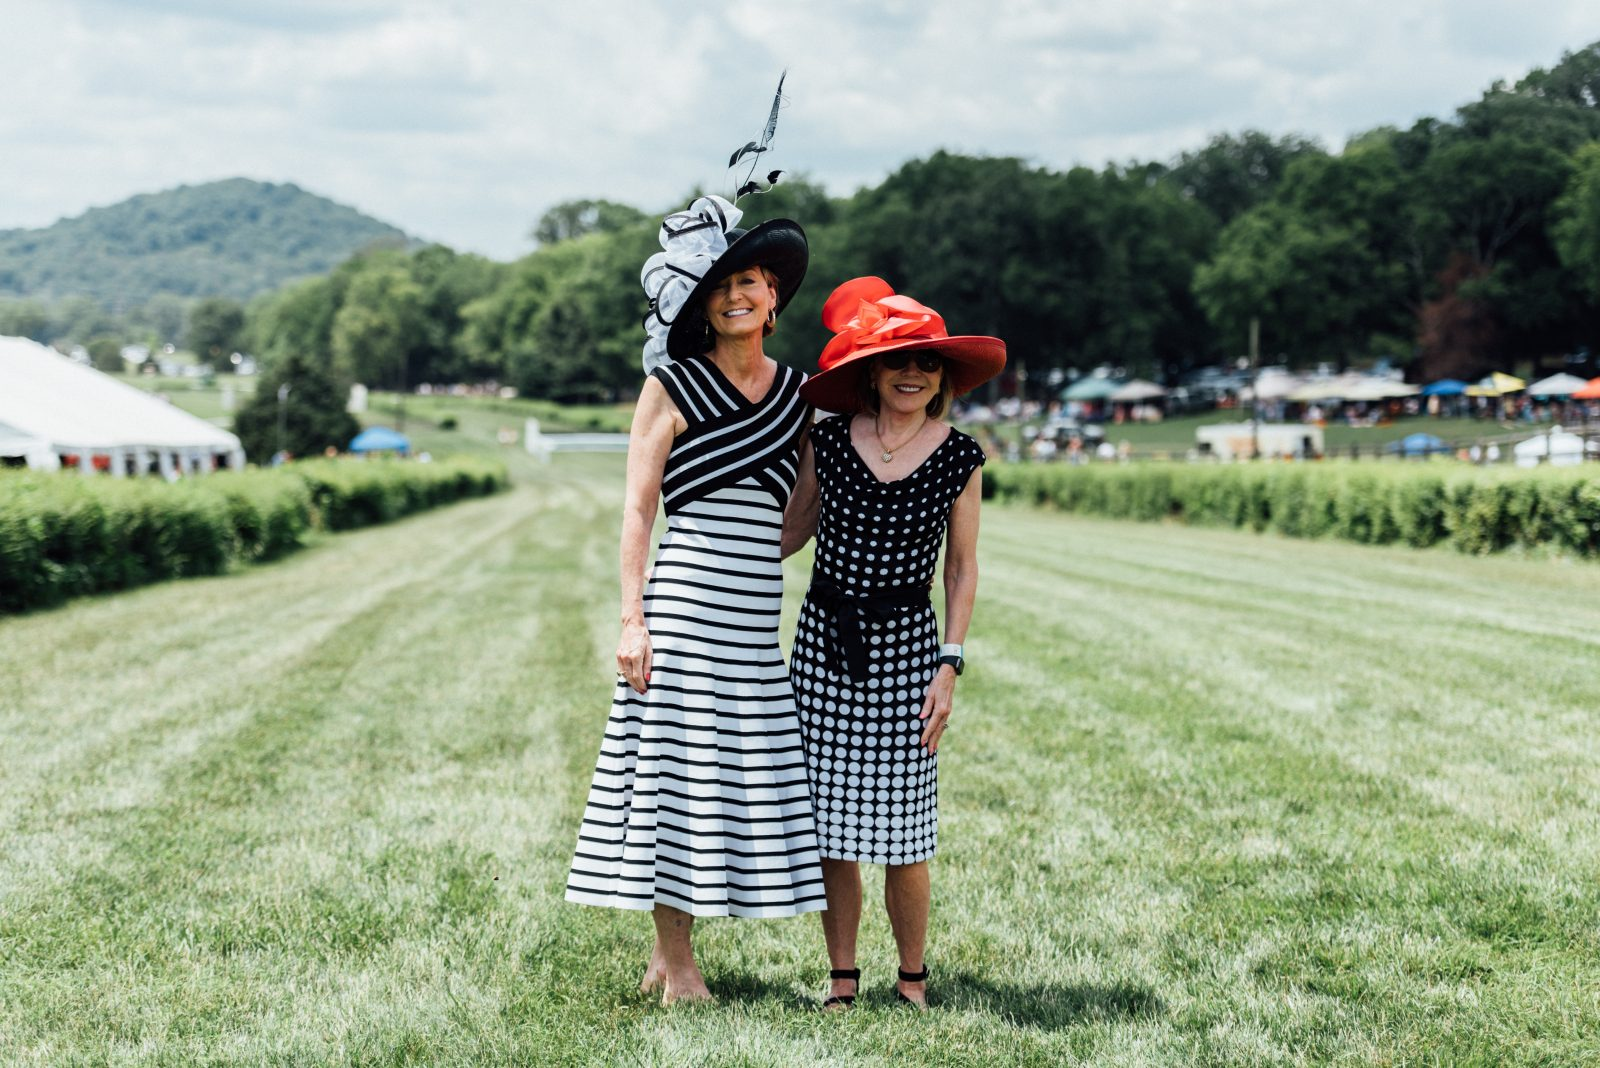 Jane McLeod and Mary Wick at Steeplechase